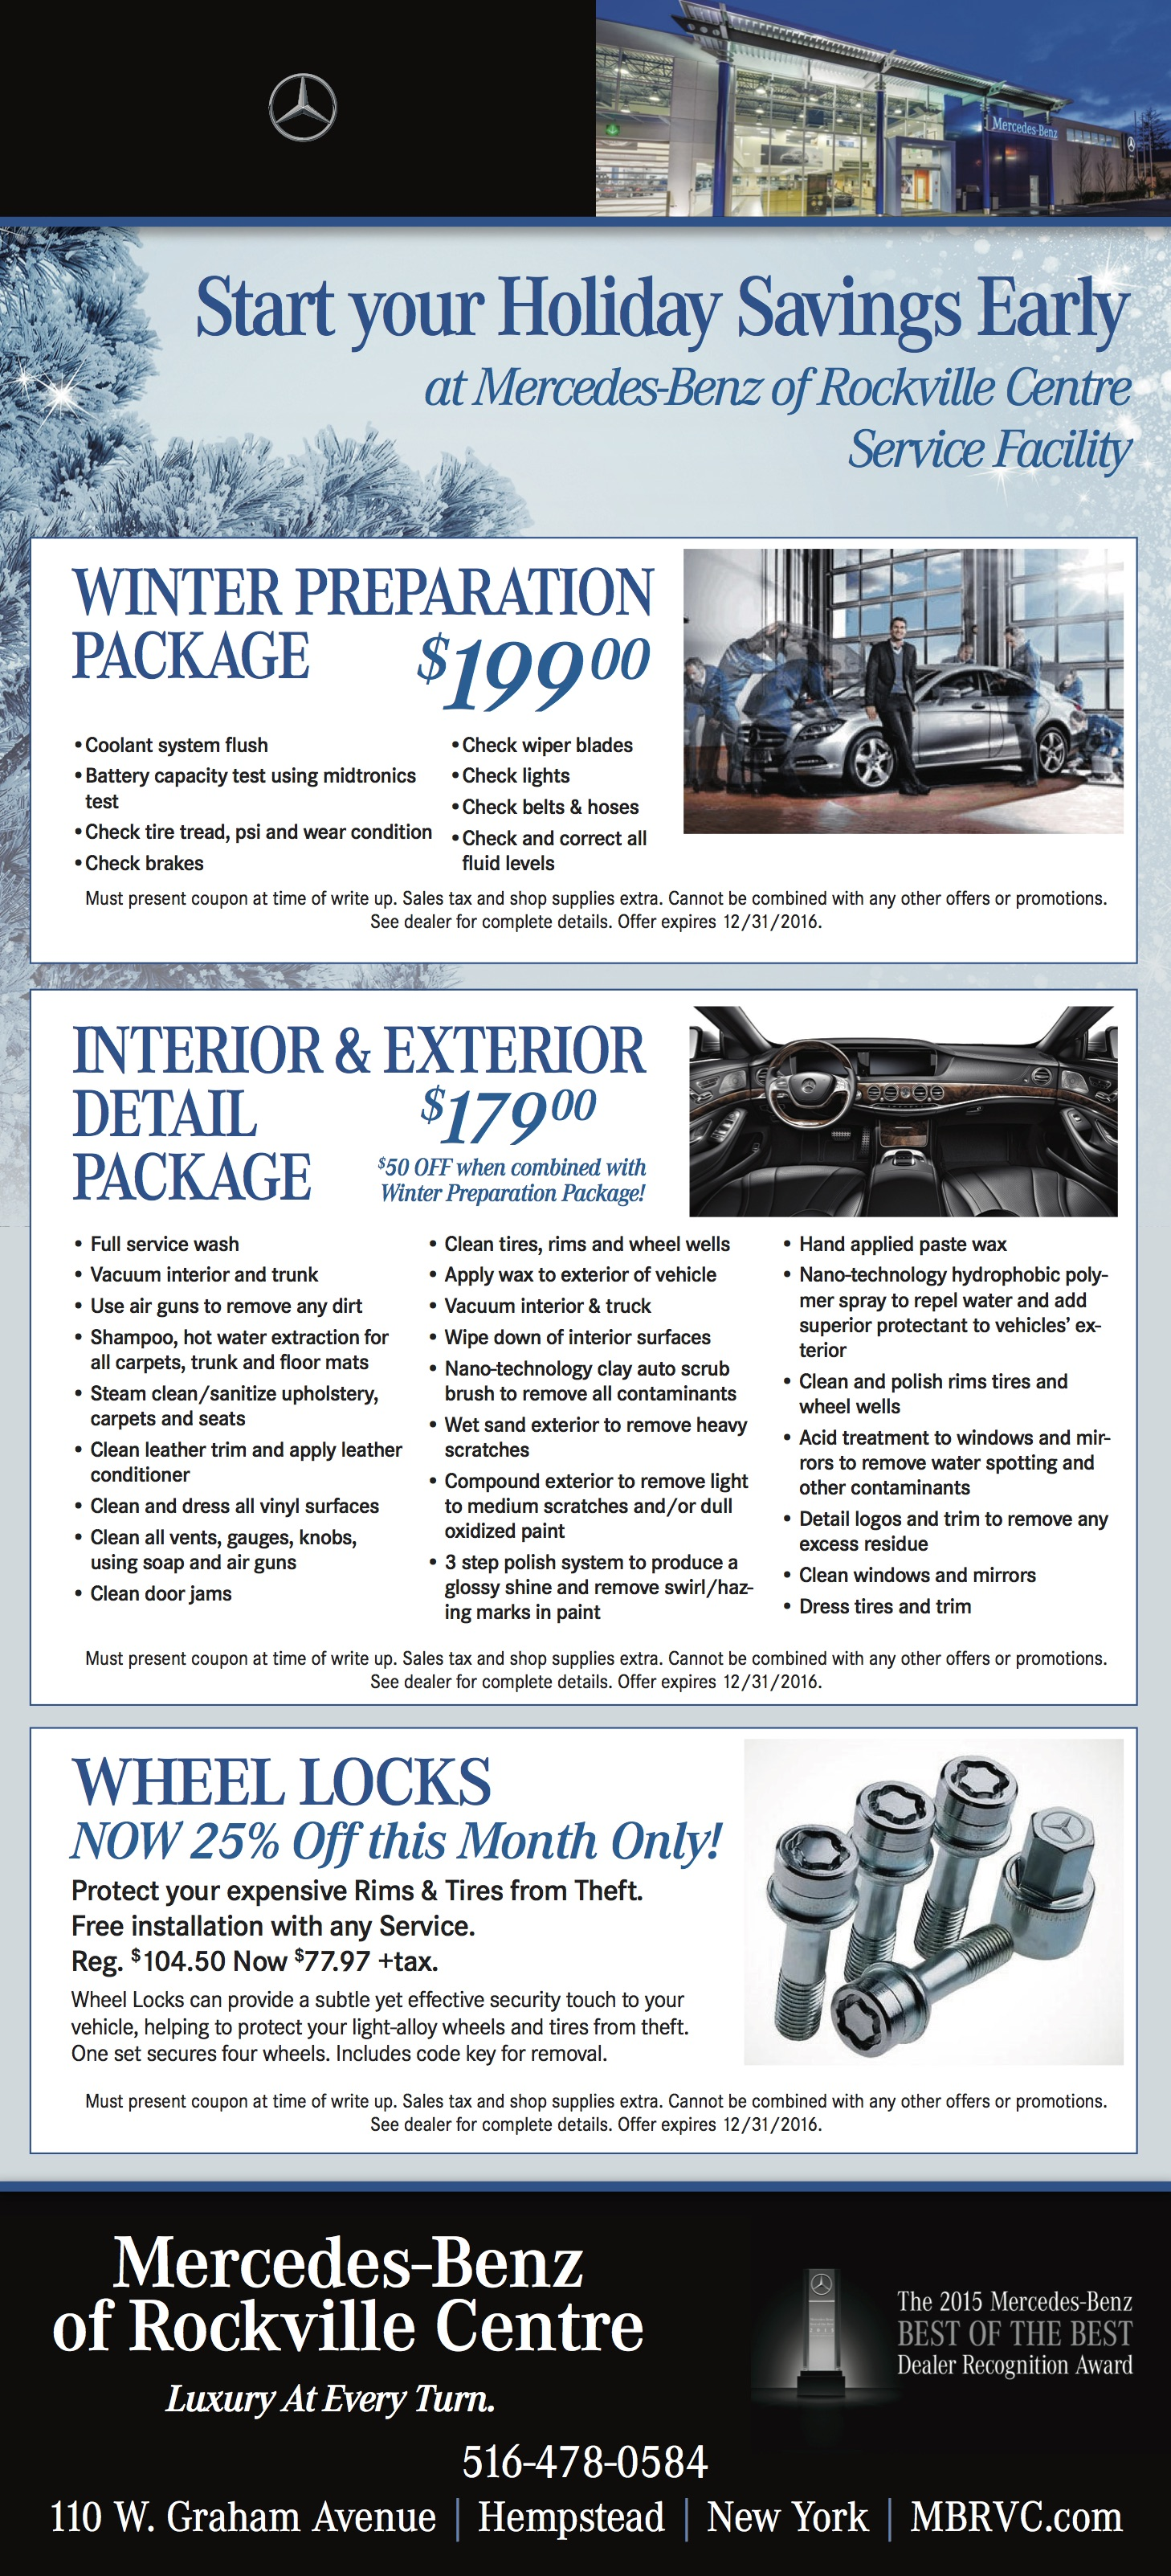 Holiday savings with mercedes benz of rockville centre for Mercedes benz of rockville centre service center hempstead ny 11550